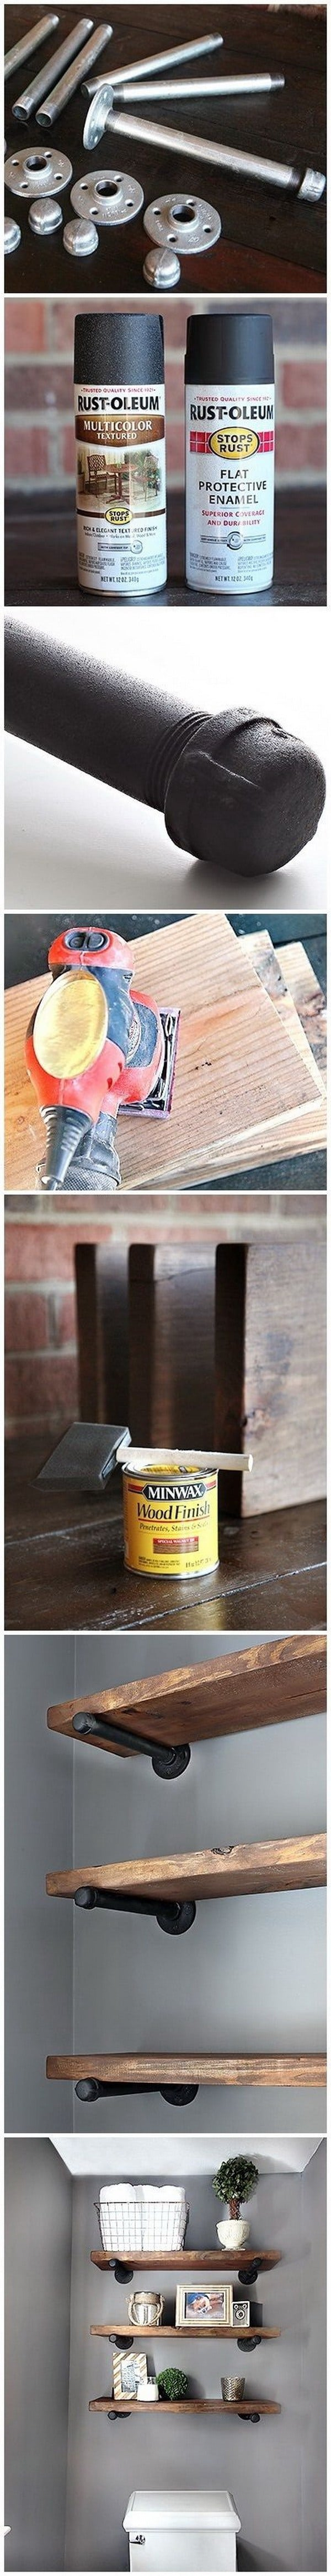 DIY shelves bookshelf hardware